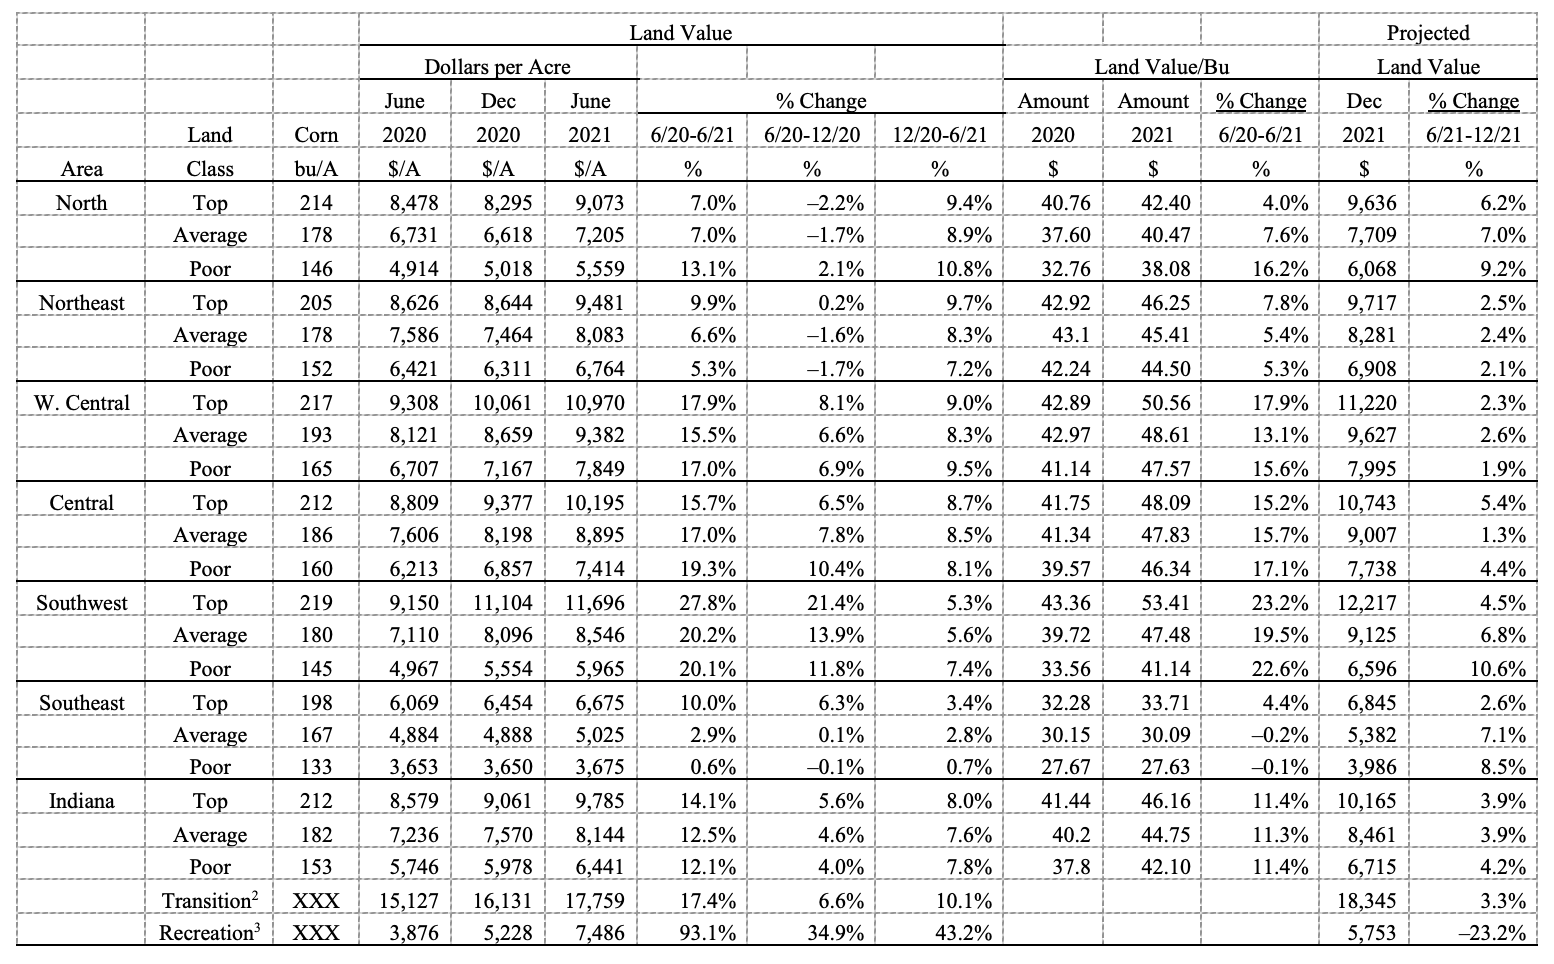 Table 1: Average estimated Indiana land value per acre (tillable, bare land), per bushel of corn yield, and percentage change by geographic area and land class, selected time periods, Purdue Land Value Survey, June 20211